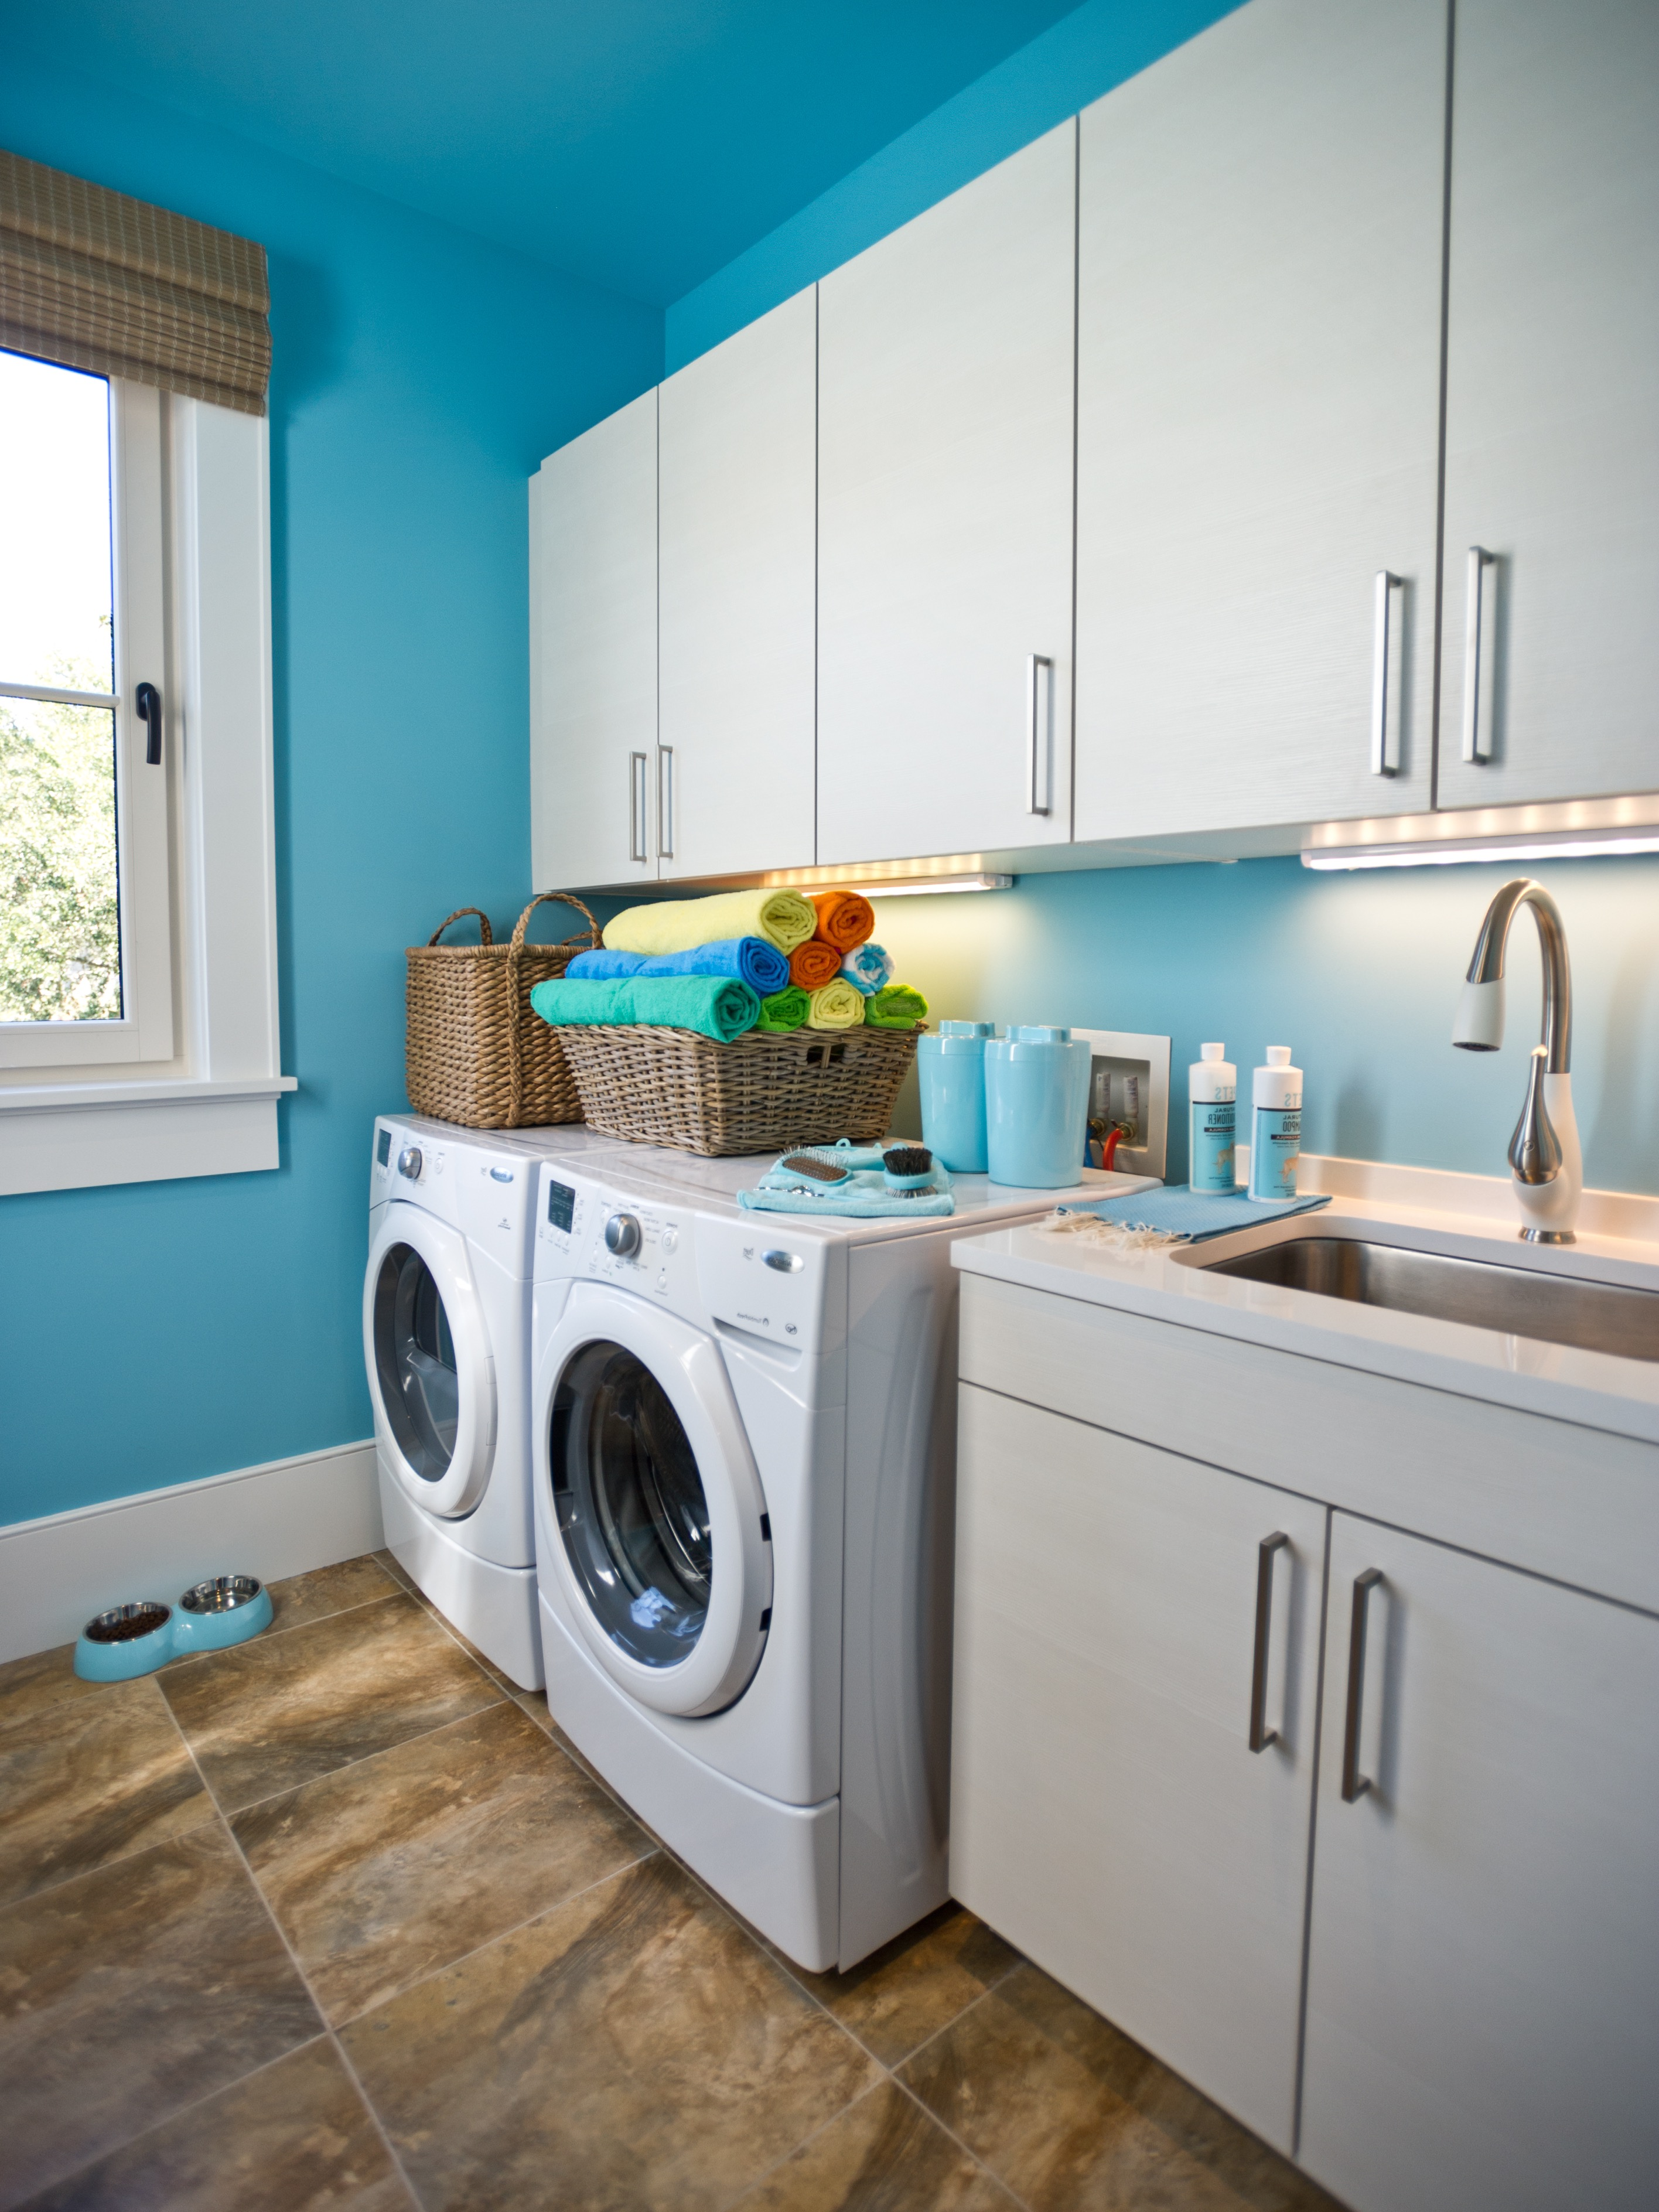 Warm And Cozy Laundry Room Design (Image 23 of 26)